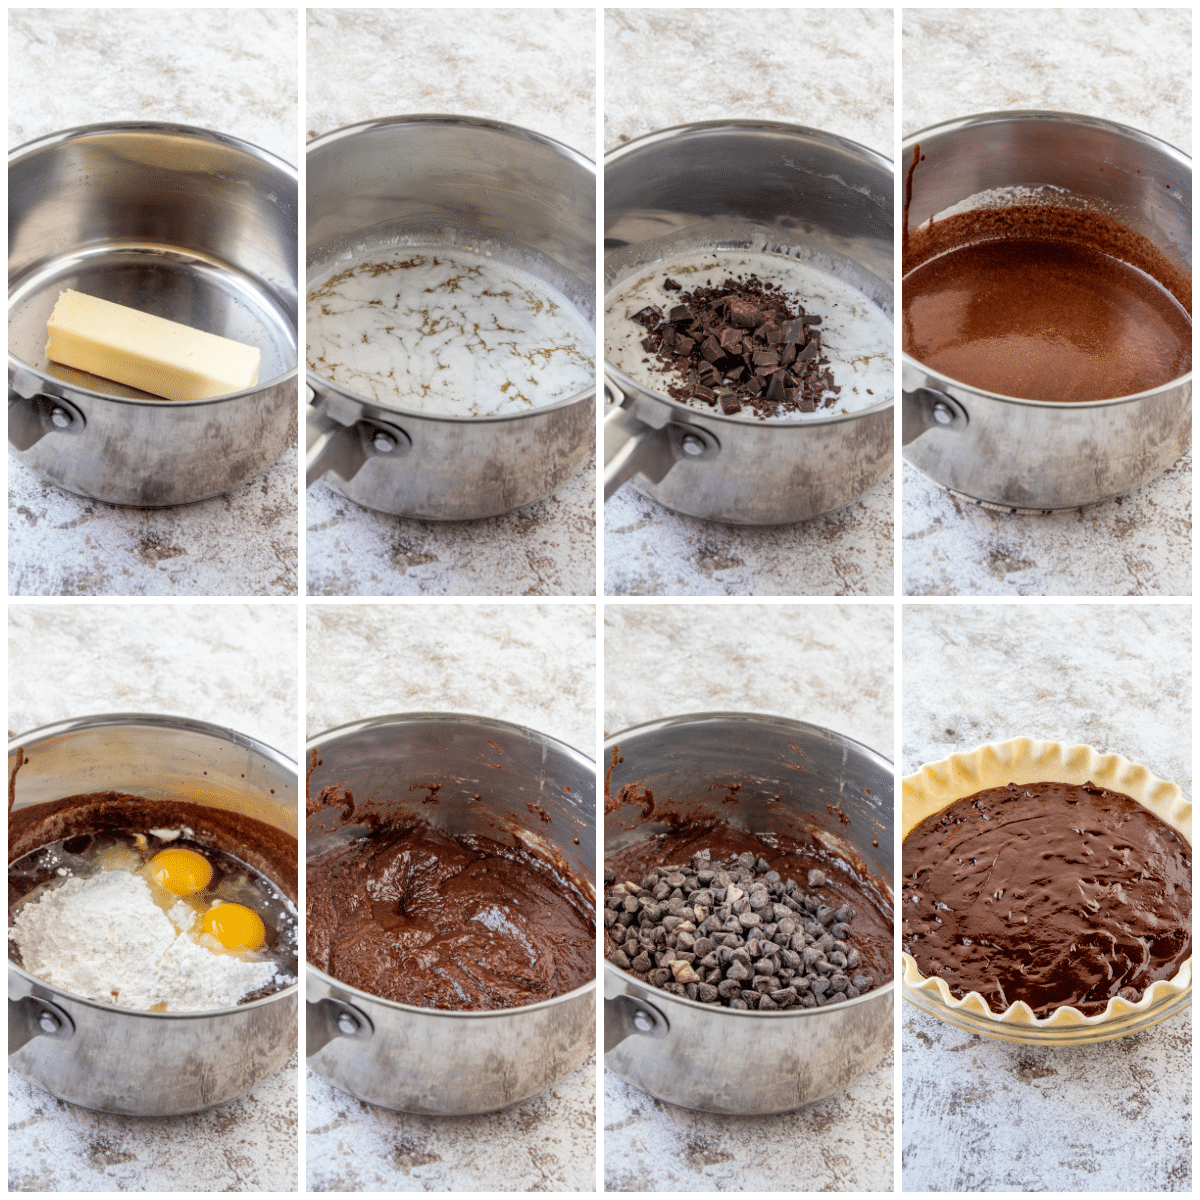 Images showing the steps needed to make Brownie Pie